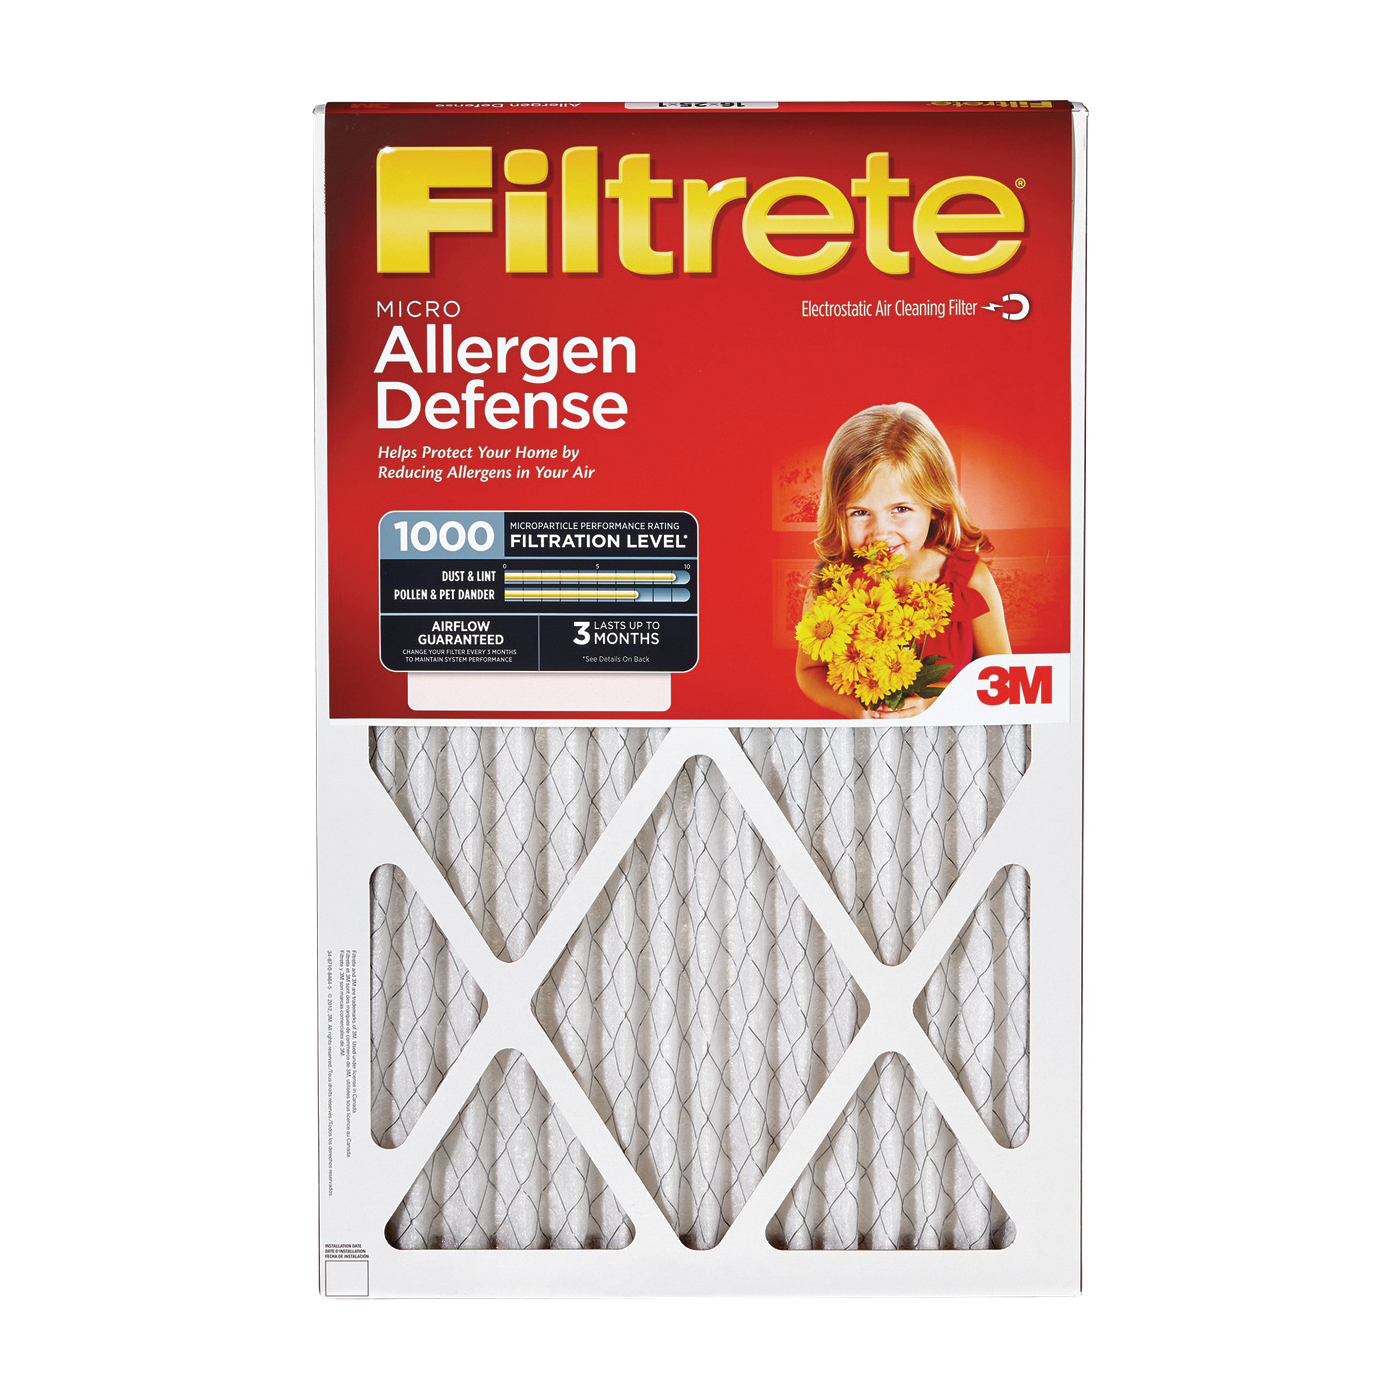 Picture of Filtrete 9802DC-6 Micro Air Filter, 20 in L, 20 in W, 11 MERV, 90 % Filter Efficiency, Pleated Fabric Filter Media